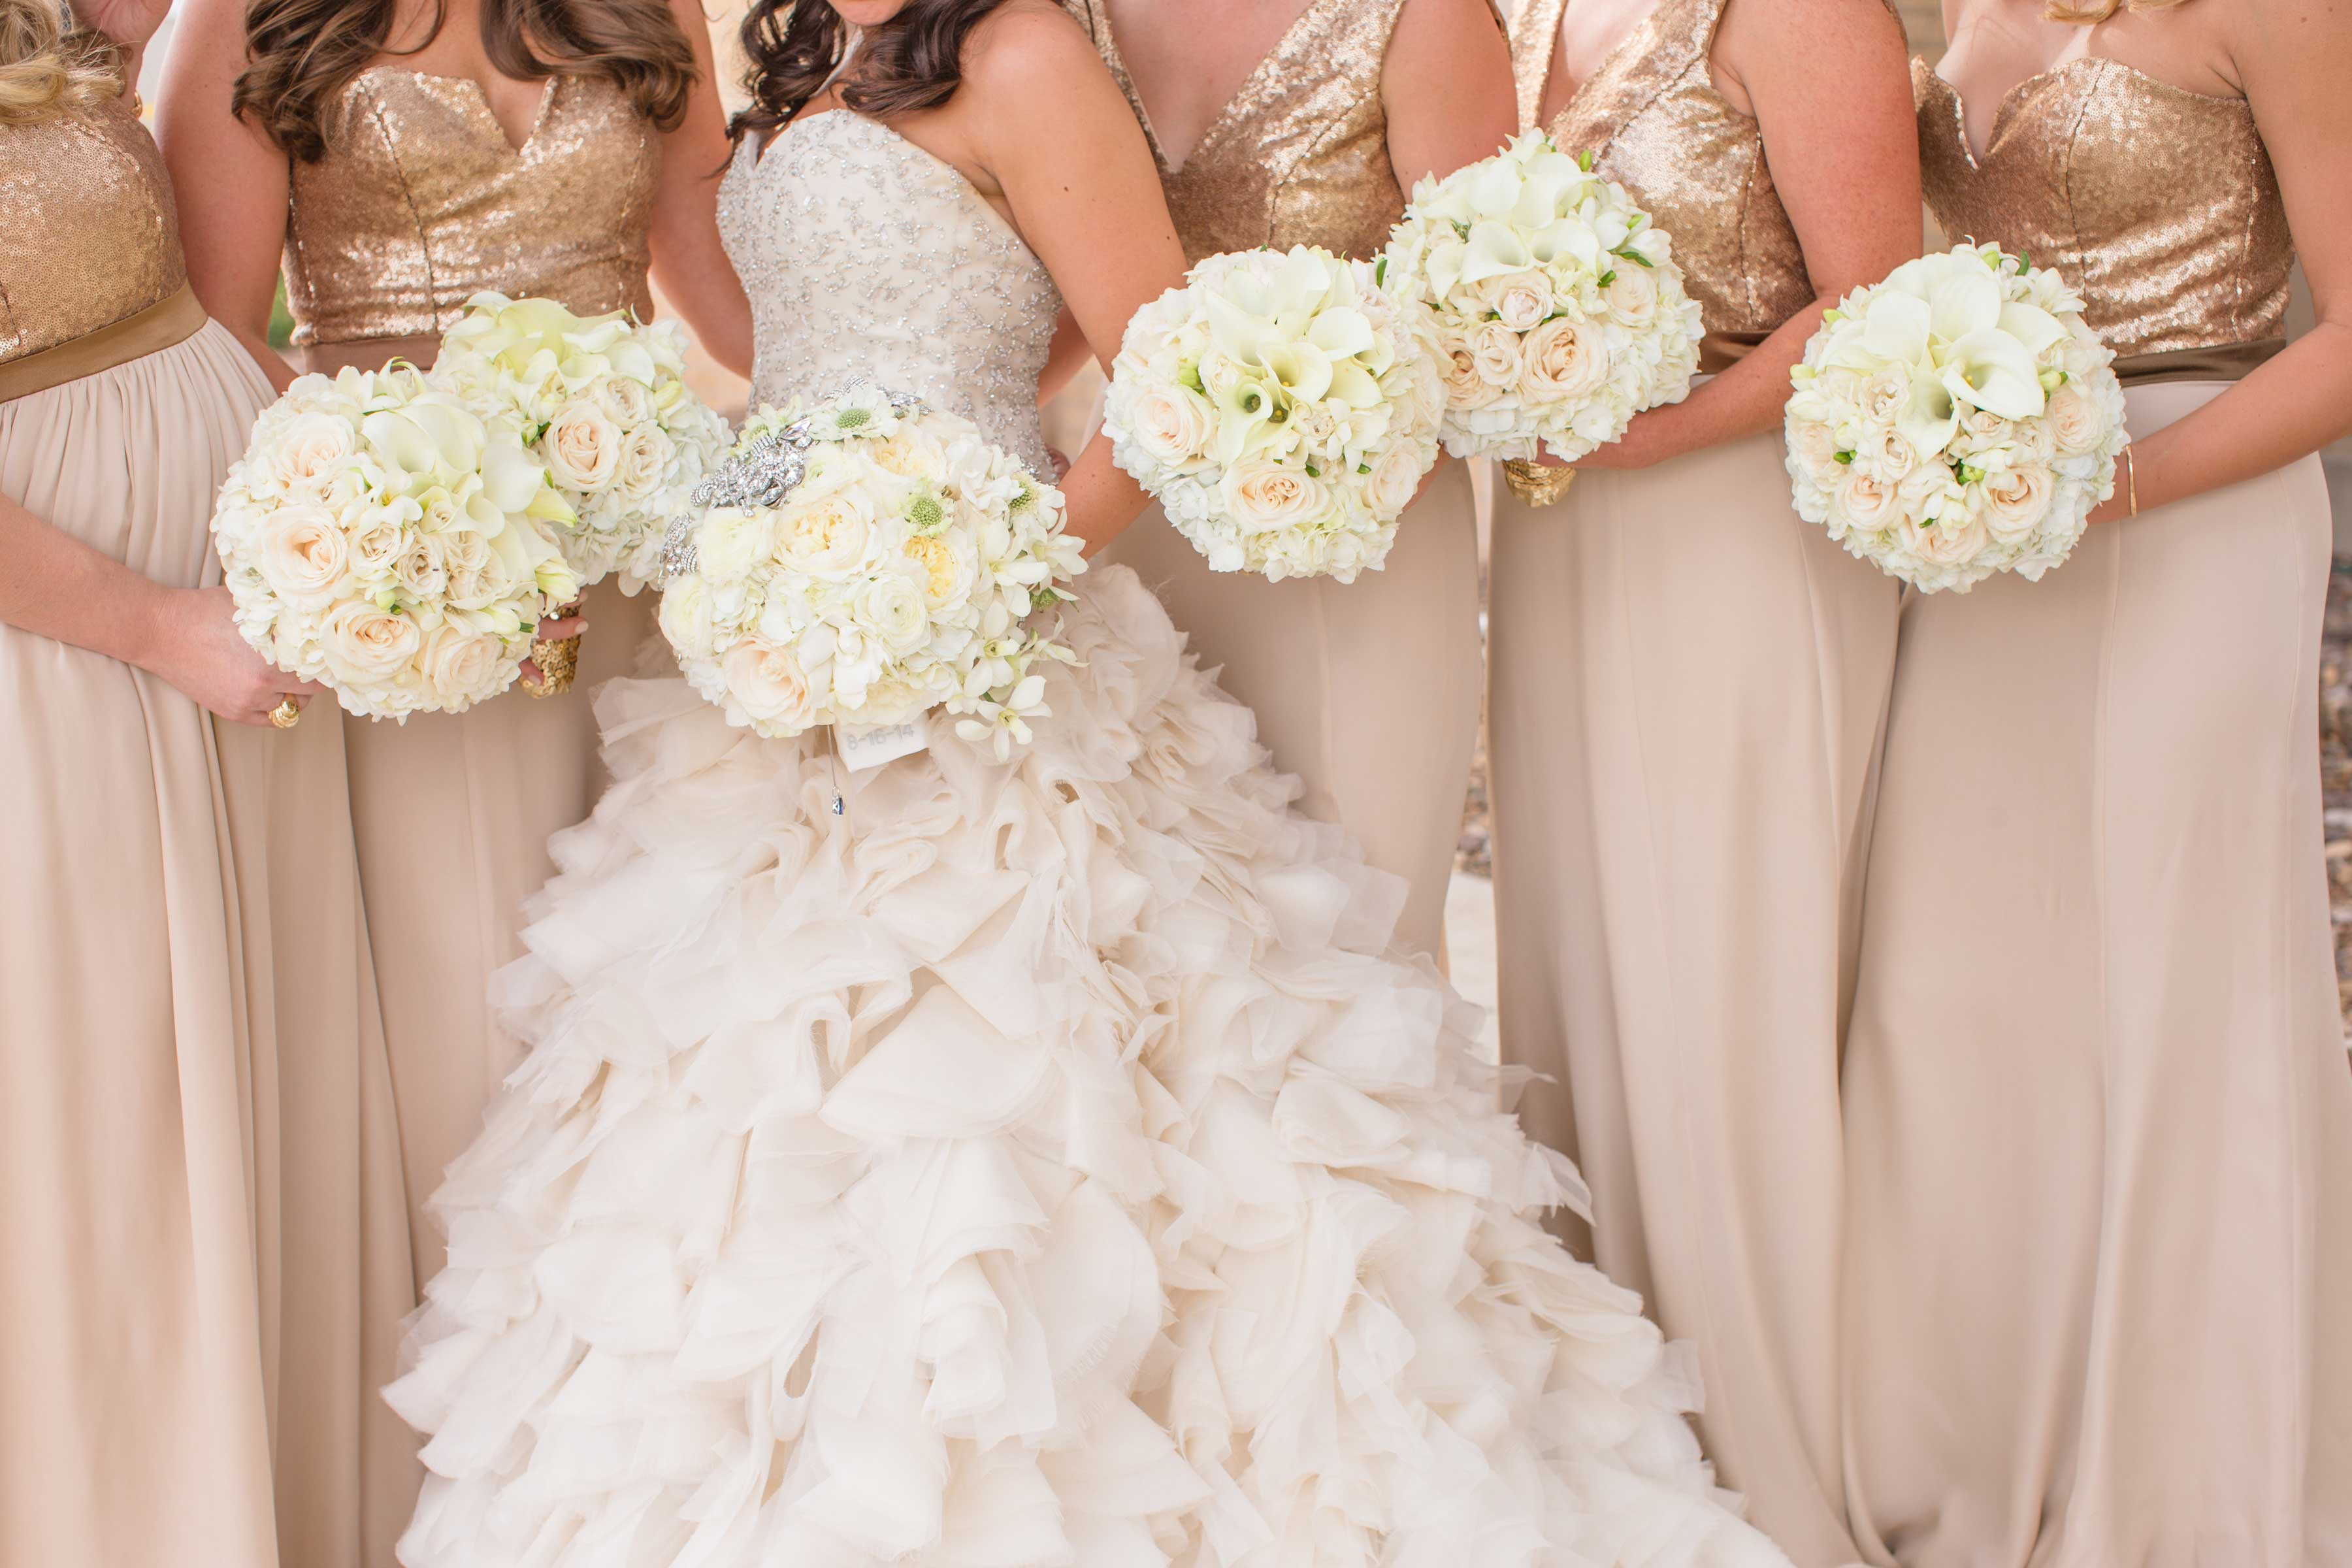 Bridesmaids in gold sequin bodice gowns with champagne skirts and bride in ruffled wedding dress